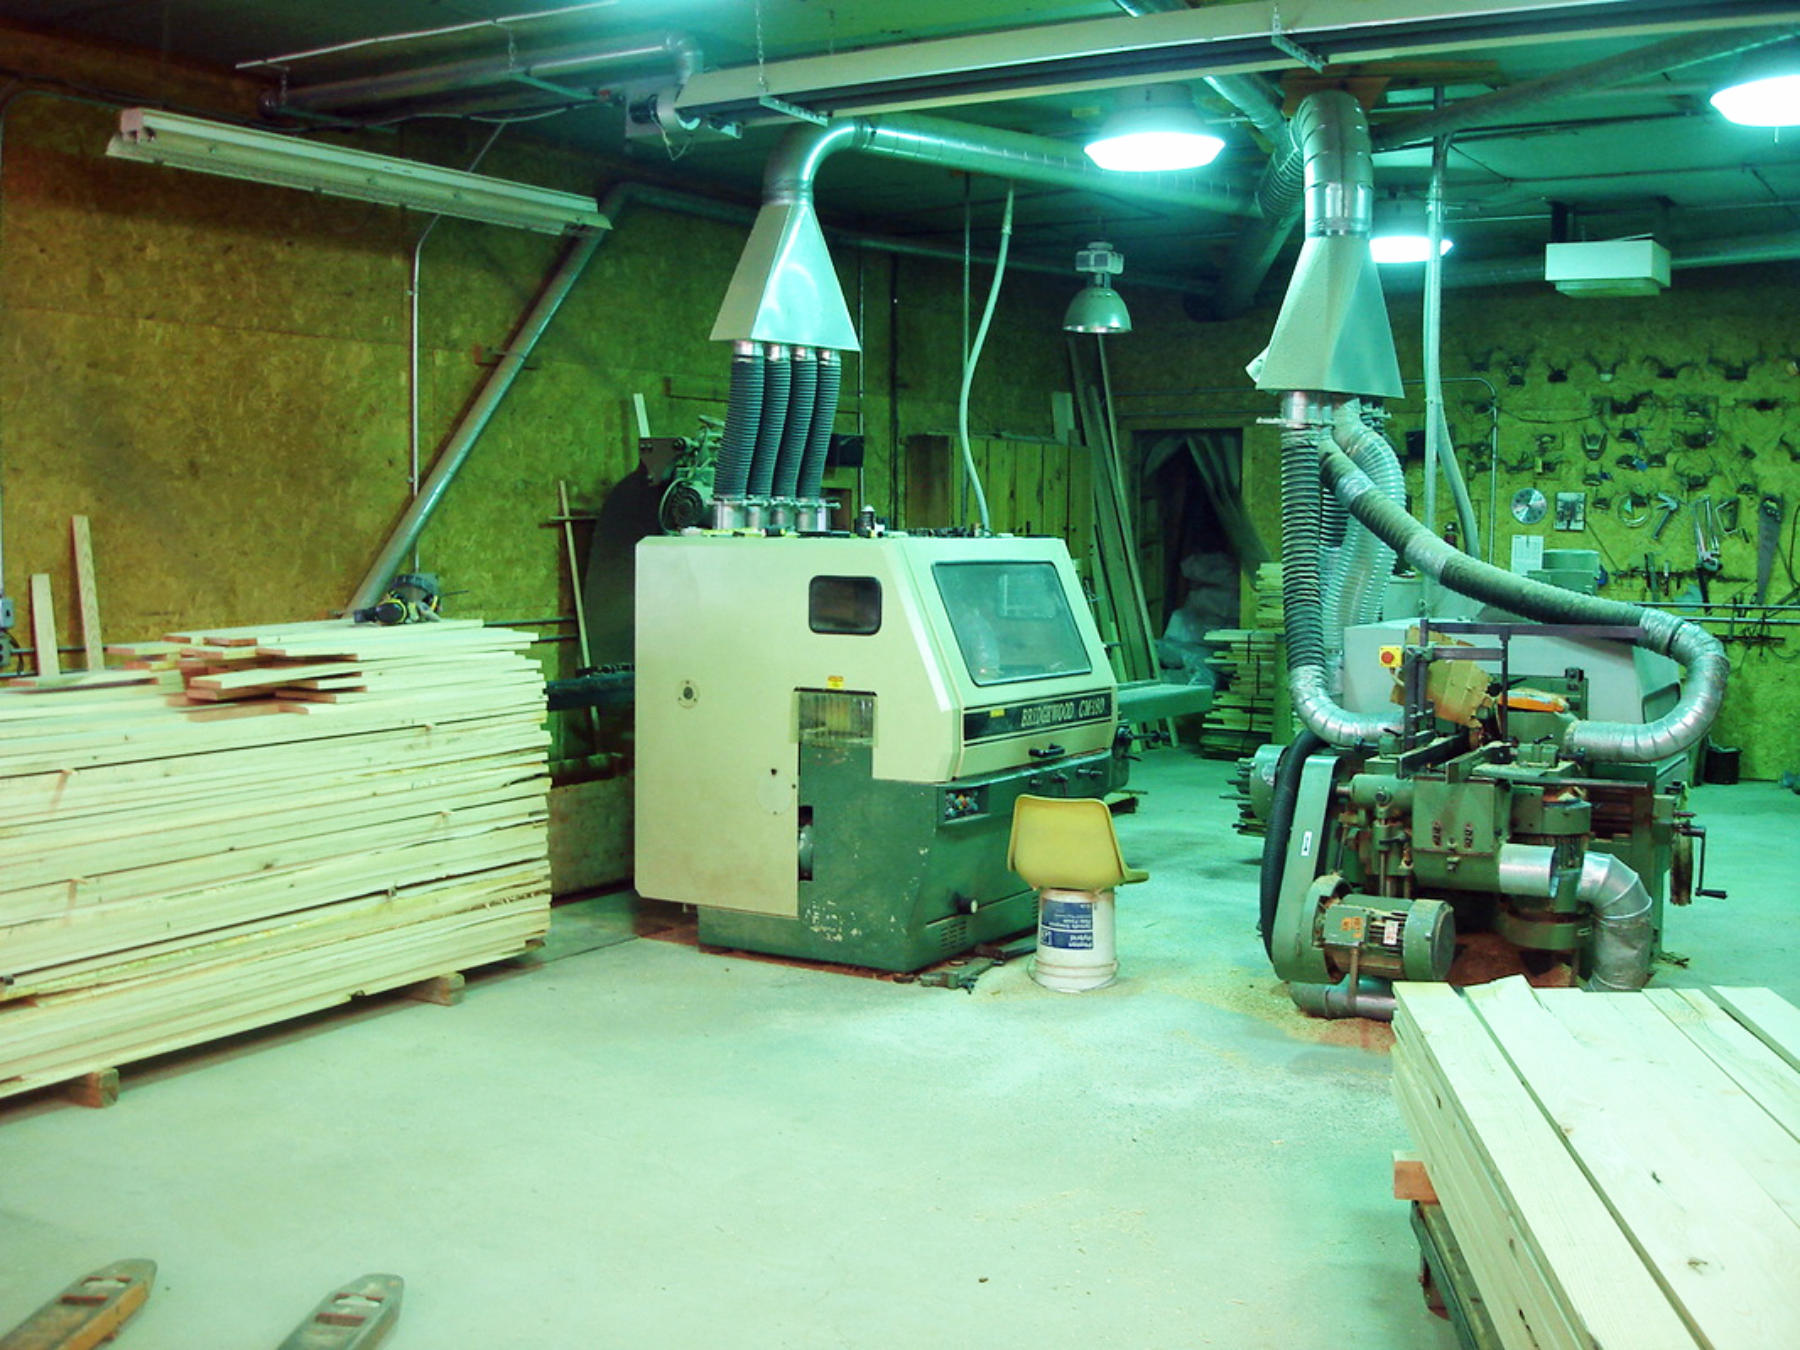 About Place Wood Products Custom Working Upper Peninsula Mi Our Woodshop If You Have Any Questions Pricing Feel Free To Call At 906 265 3222 Check Out The Pictures Below Of Shop Machinery